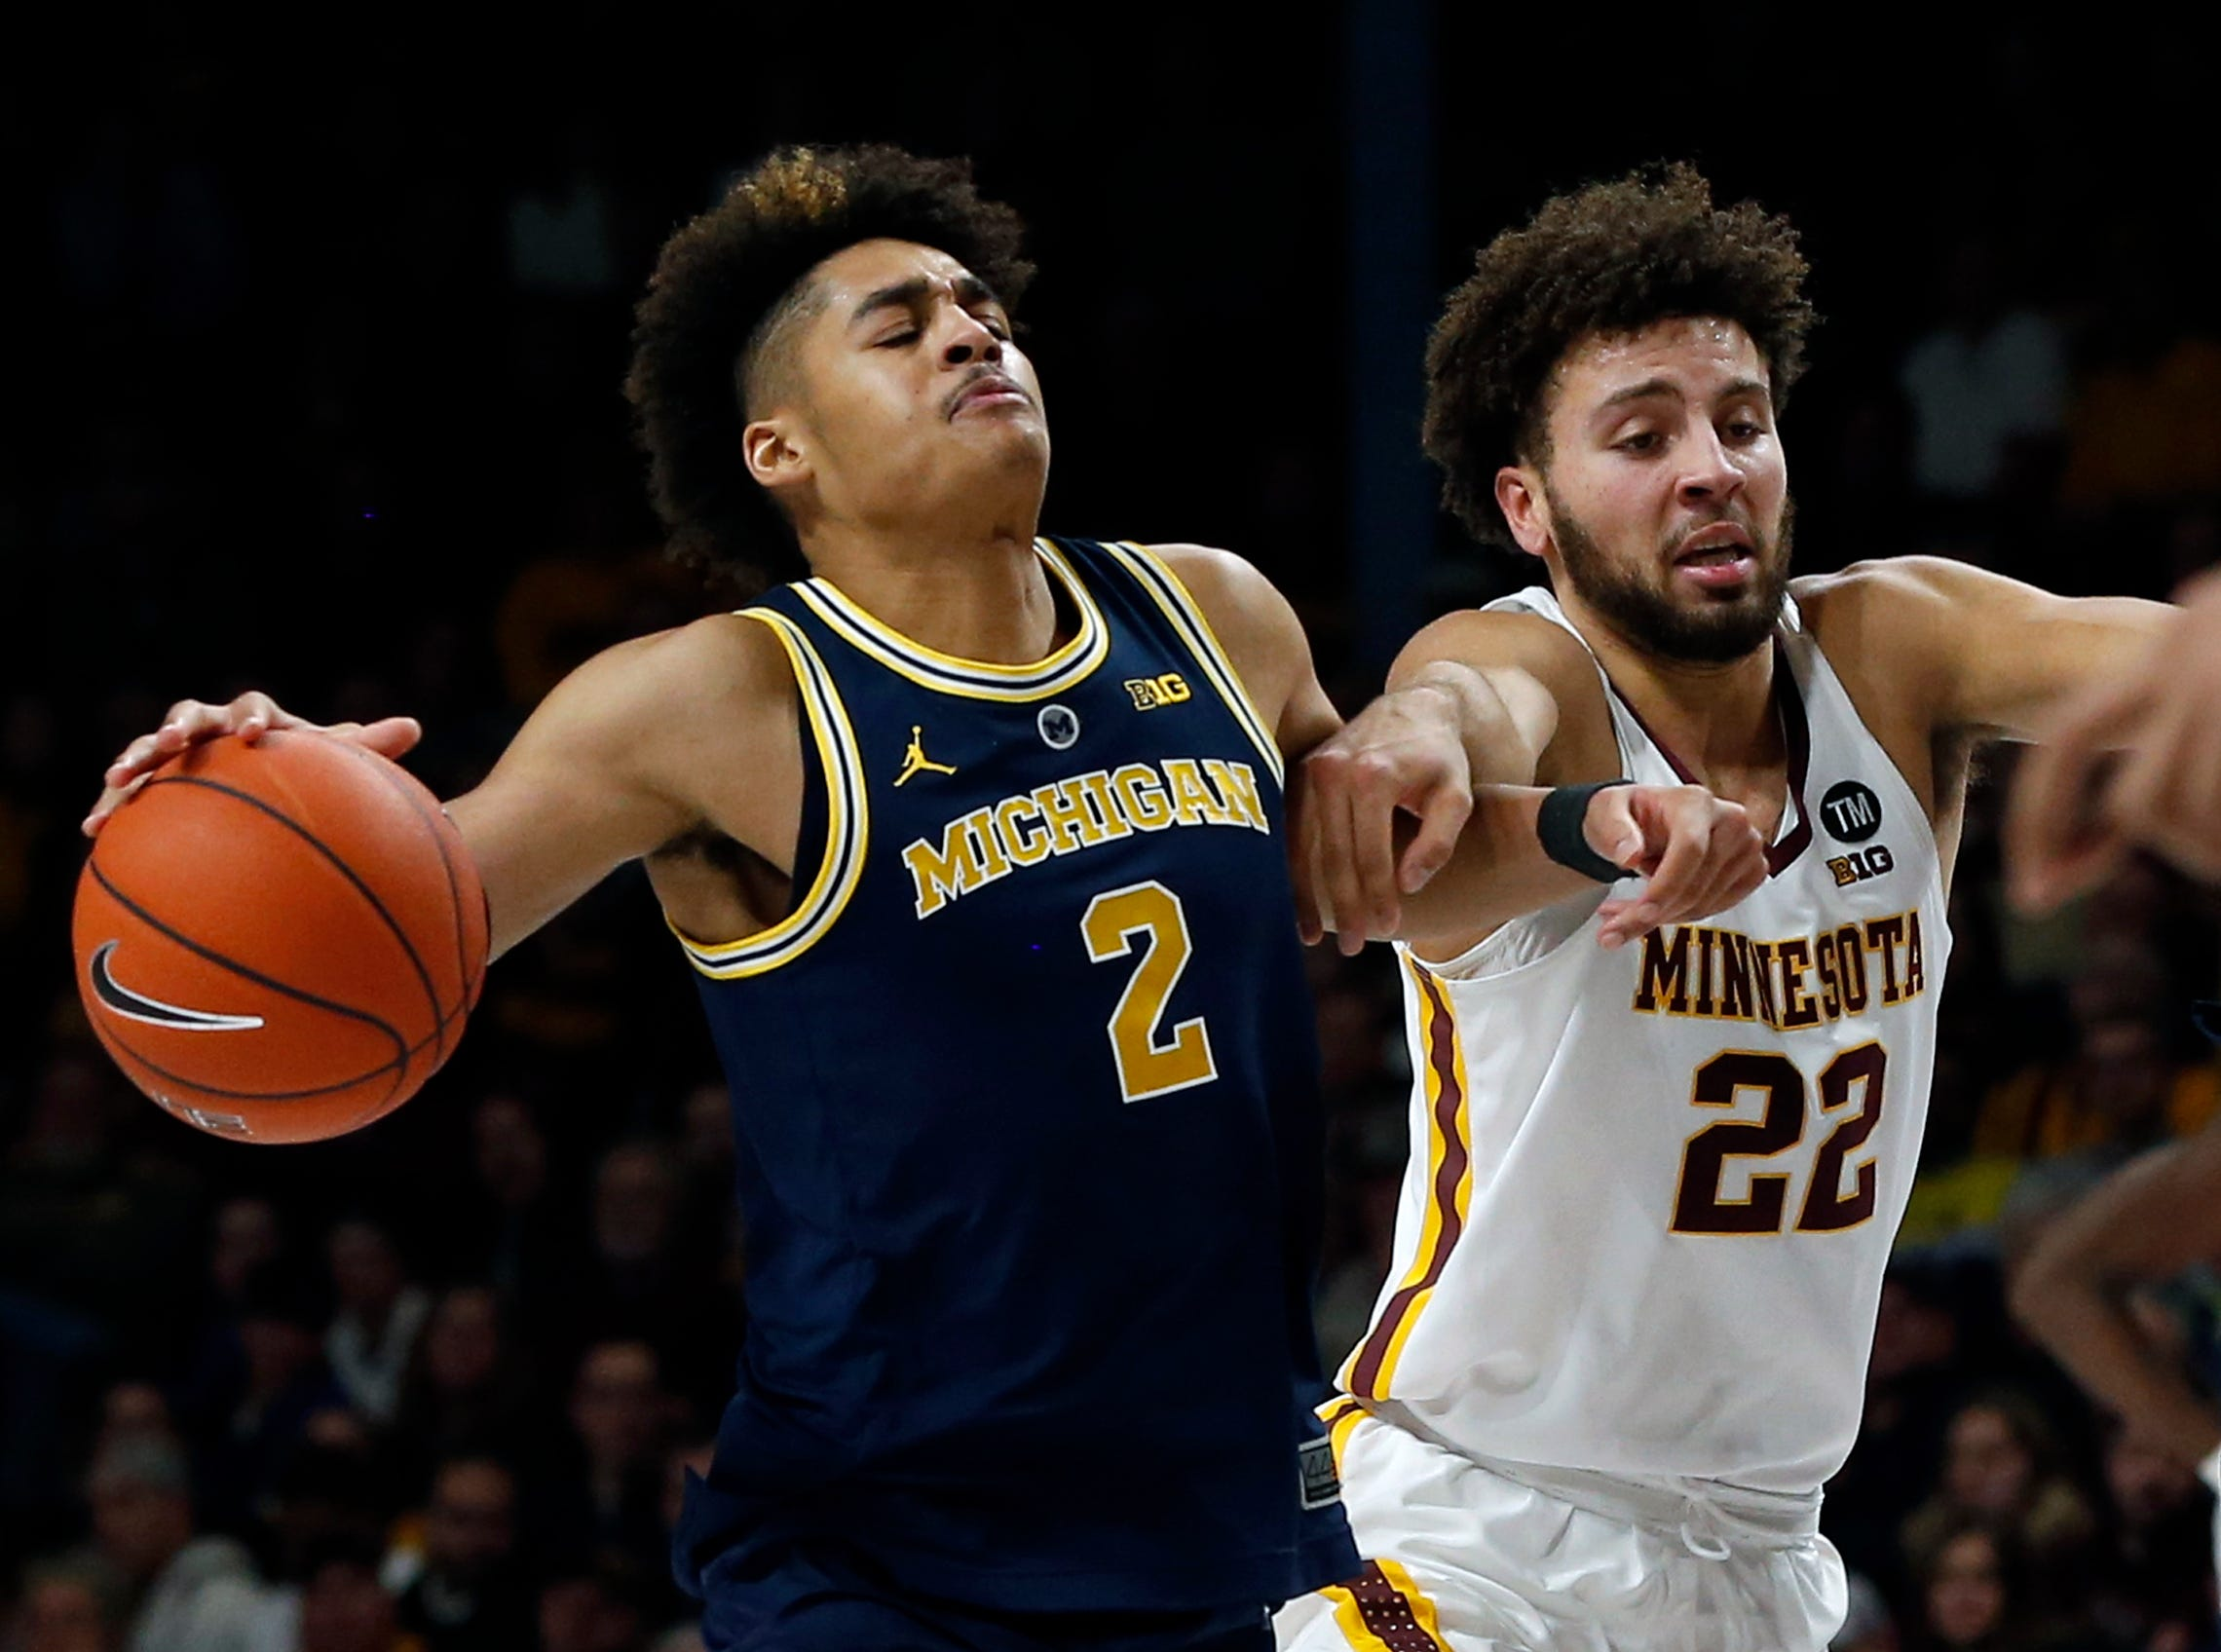 Michigan's Jordan Poole, left, drives as Minnesota's Gabe Kalscheur defends in the second half.